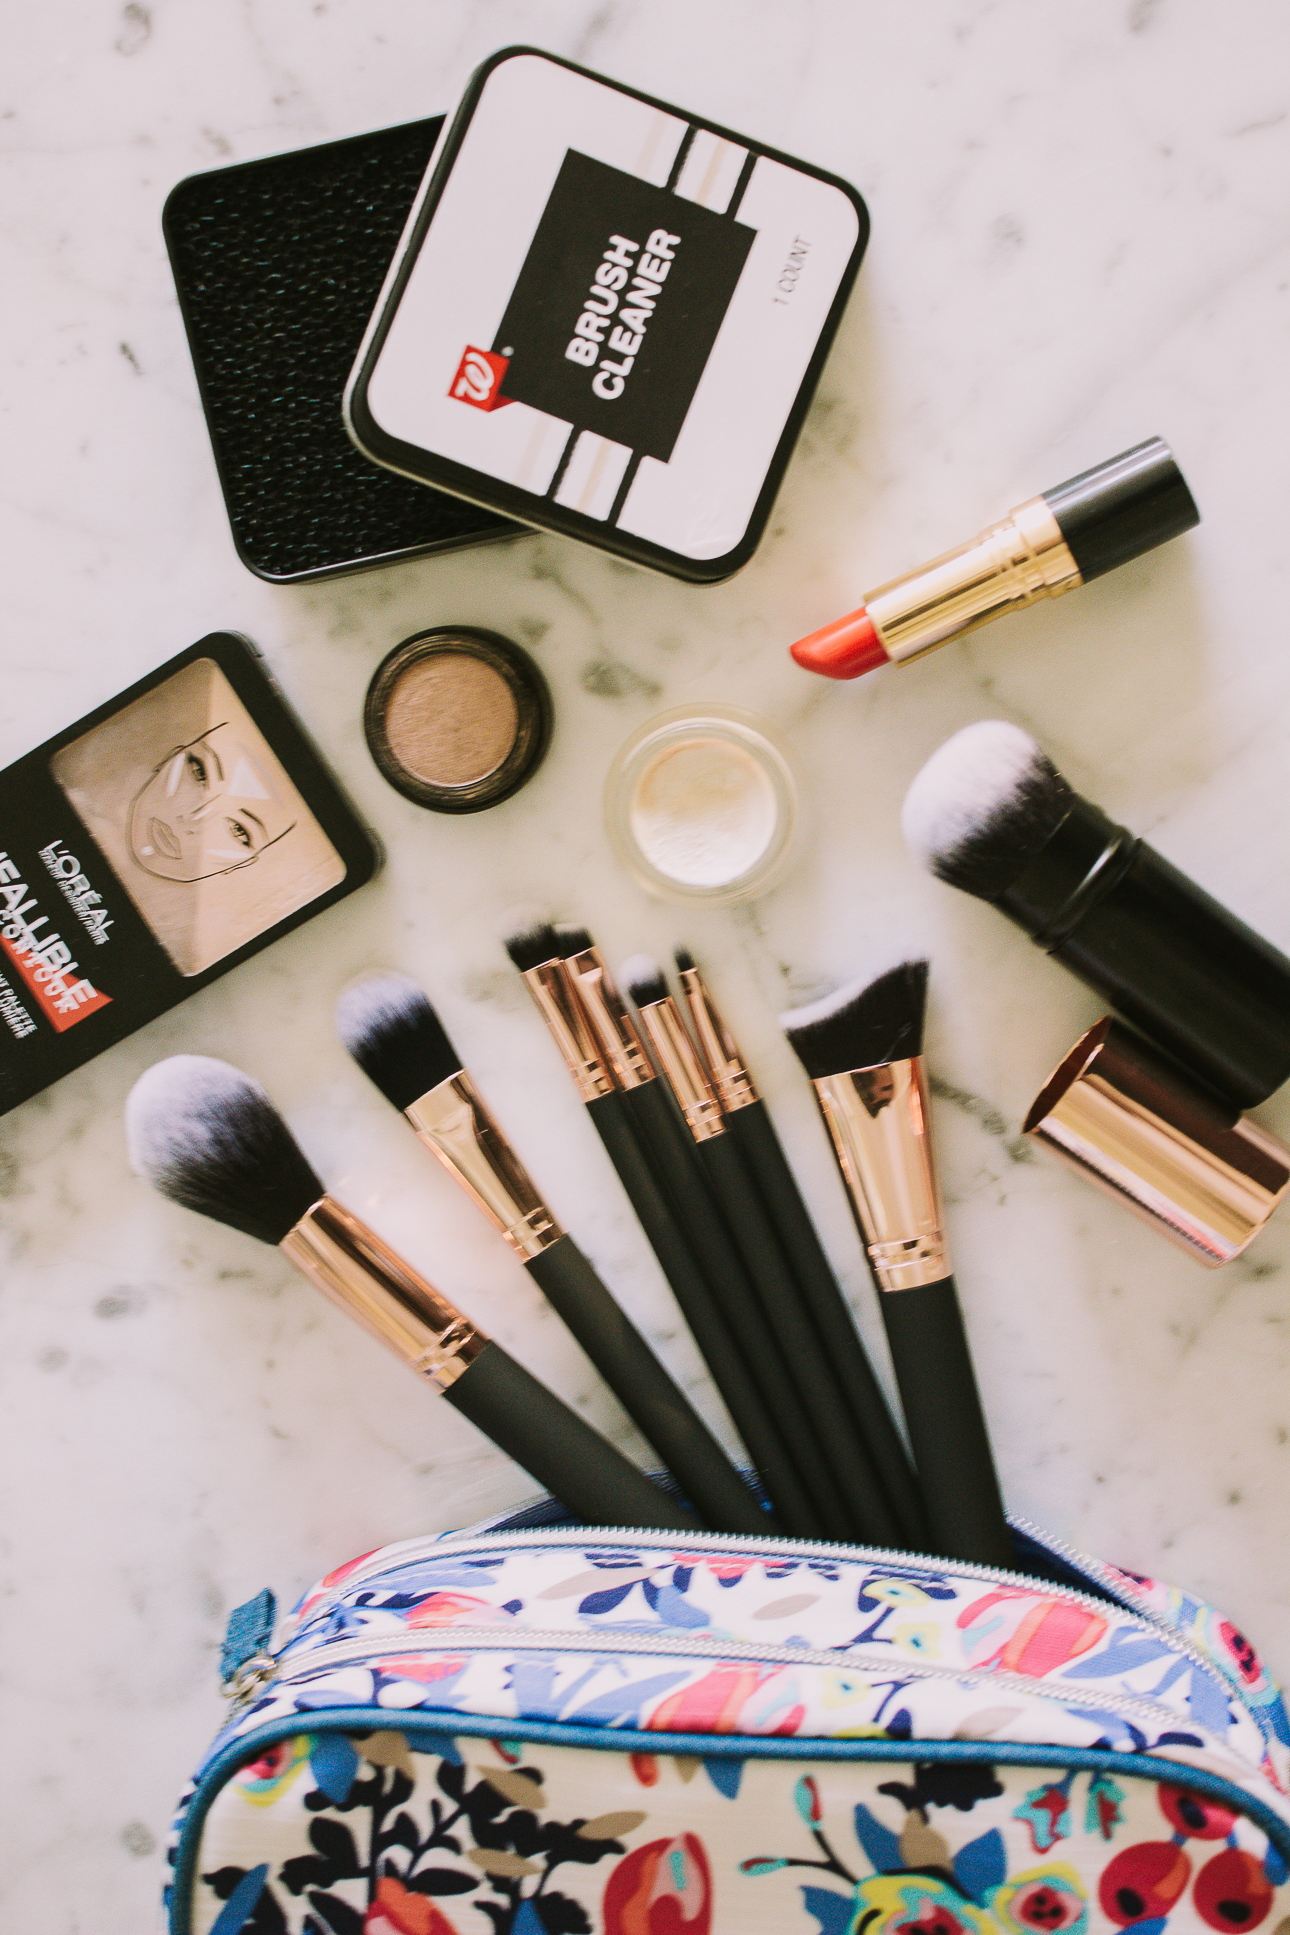 Walgreens Beauty: High Quality, Affordable Prices